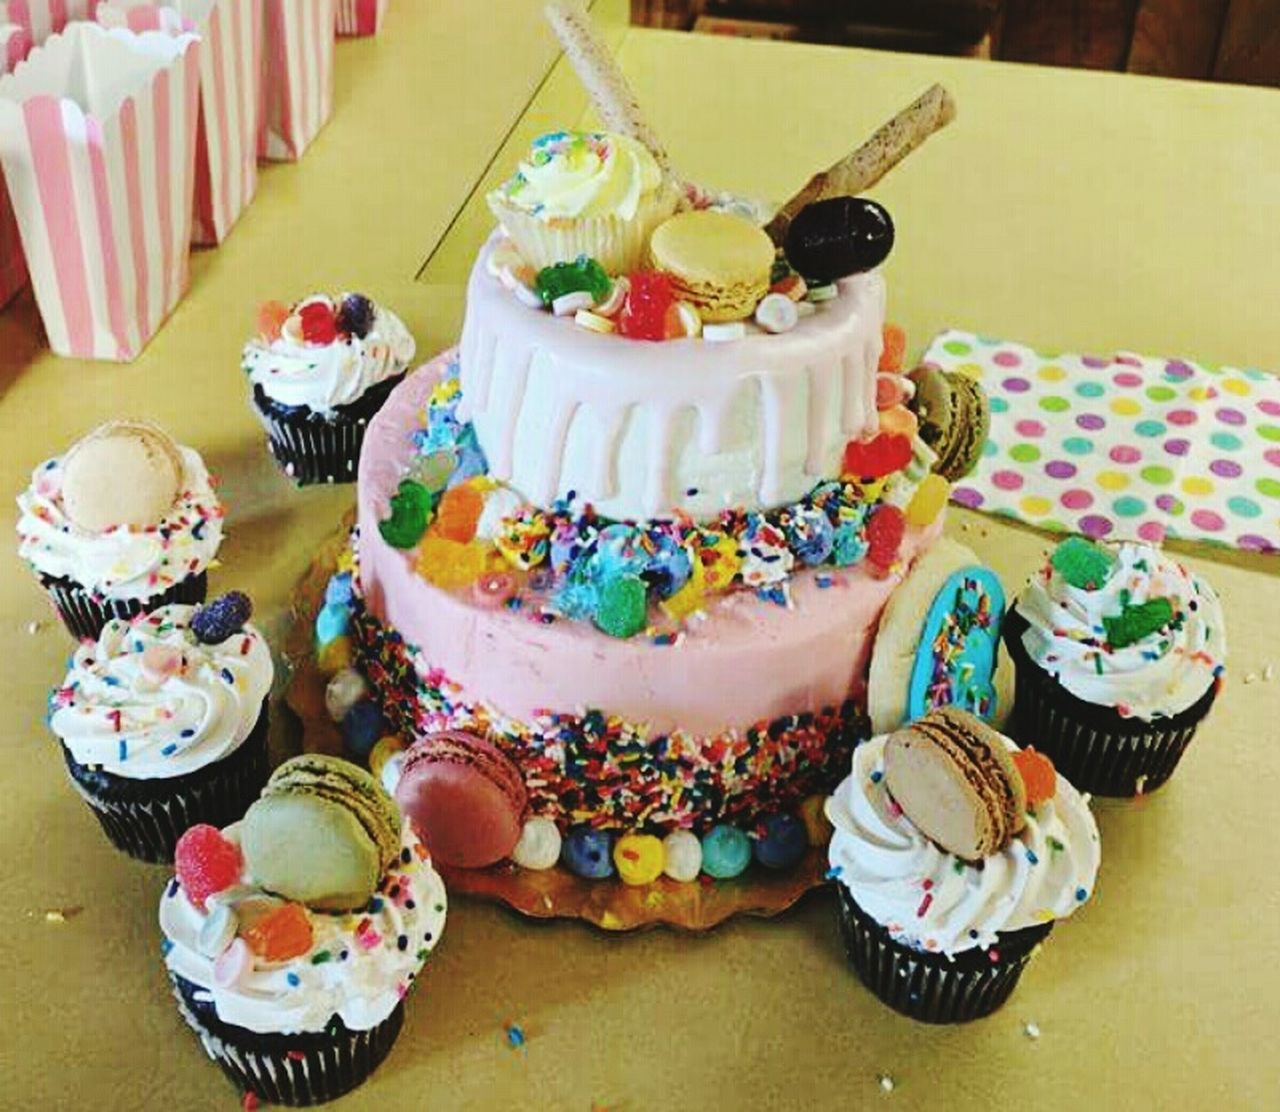 food and drink, indulgence, sweet food, temptation, dessert, food, unhealthy eating, freshness, cake, indoors, cupcake, table, ready-to-eat, sprinkles, multi colored, variation, no people, dessert topping, close-up, day